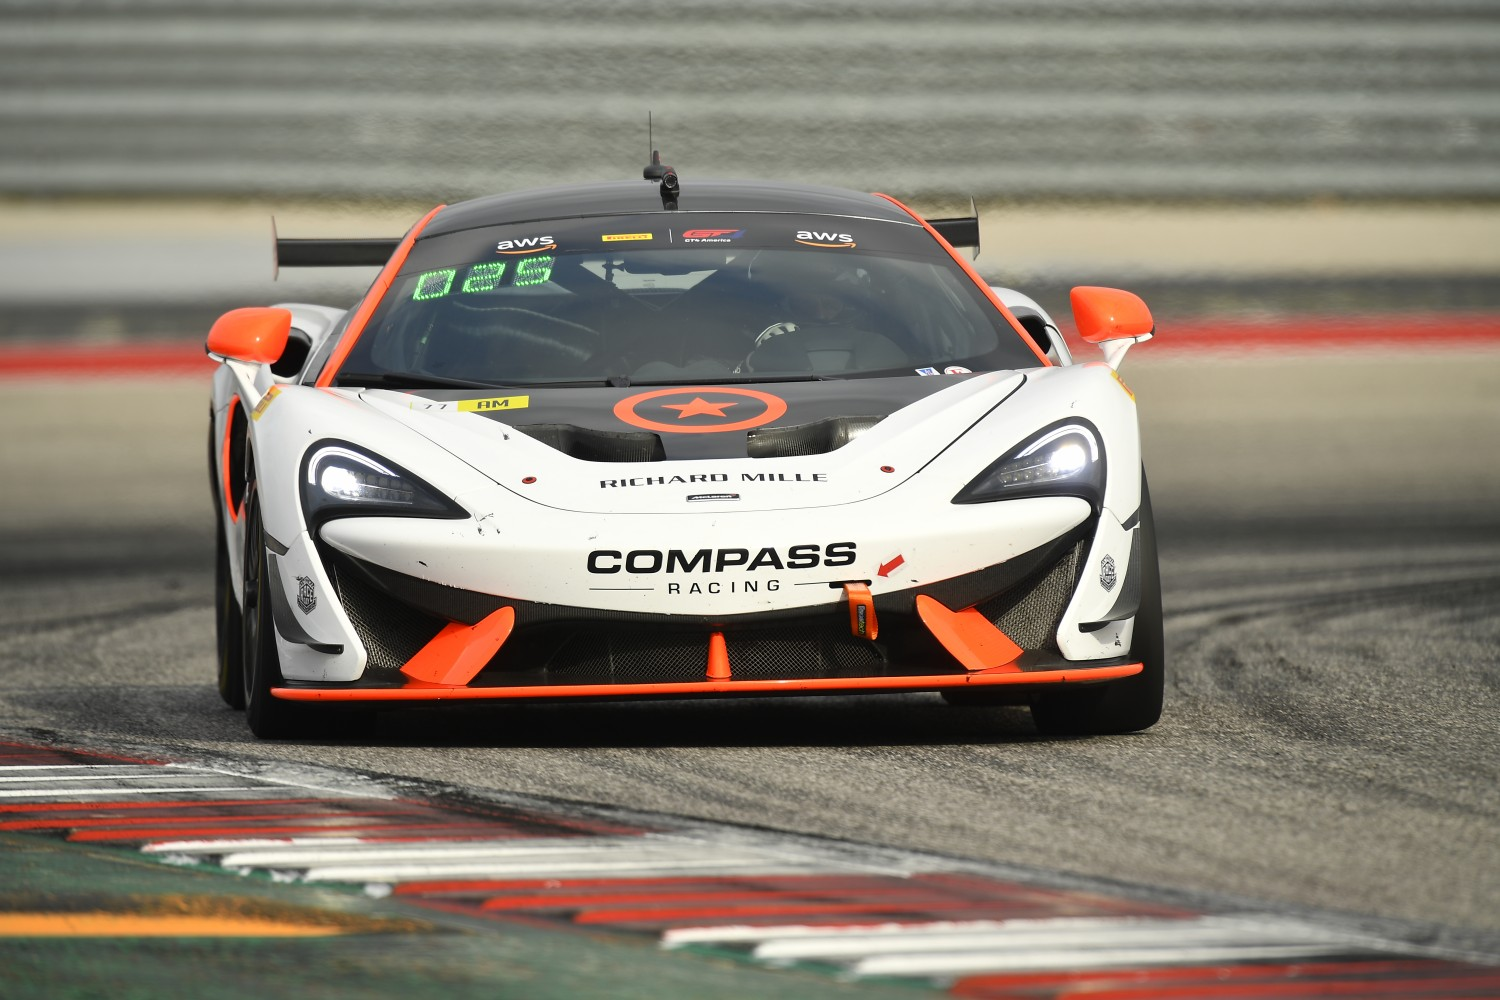 #77 GT4 SprintX, Am, Compass Racing, Anthony Geraci, Richard Golinello, McLaren 570s GT4, 2020 SRO Motorsports Group - Circuit of the Americas, Austin TX  | SRO Motorsports Group